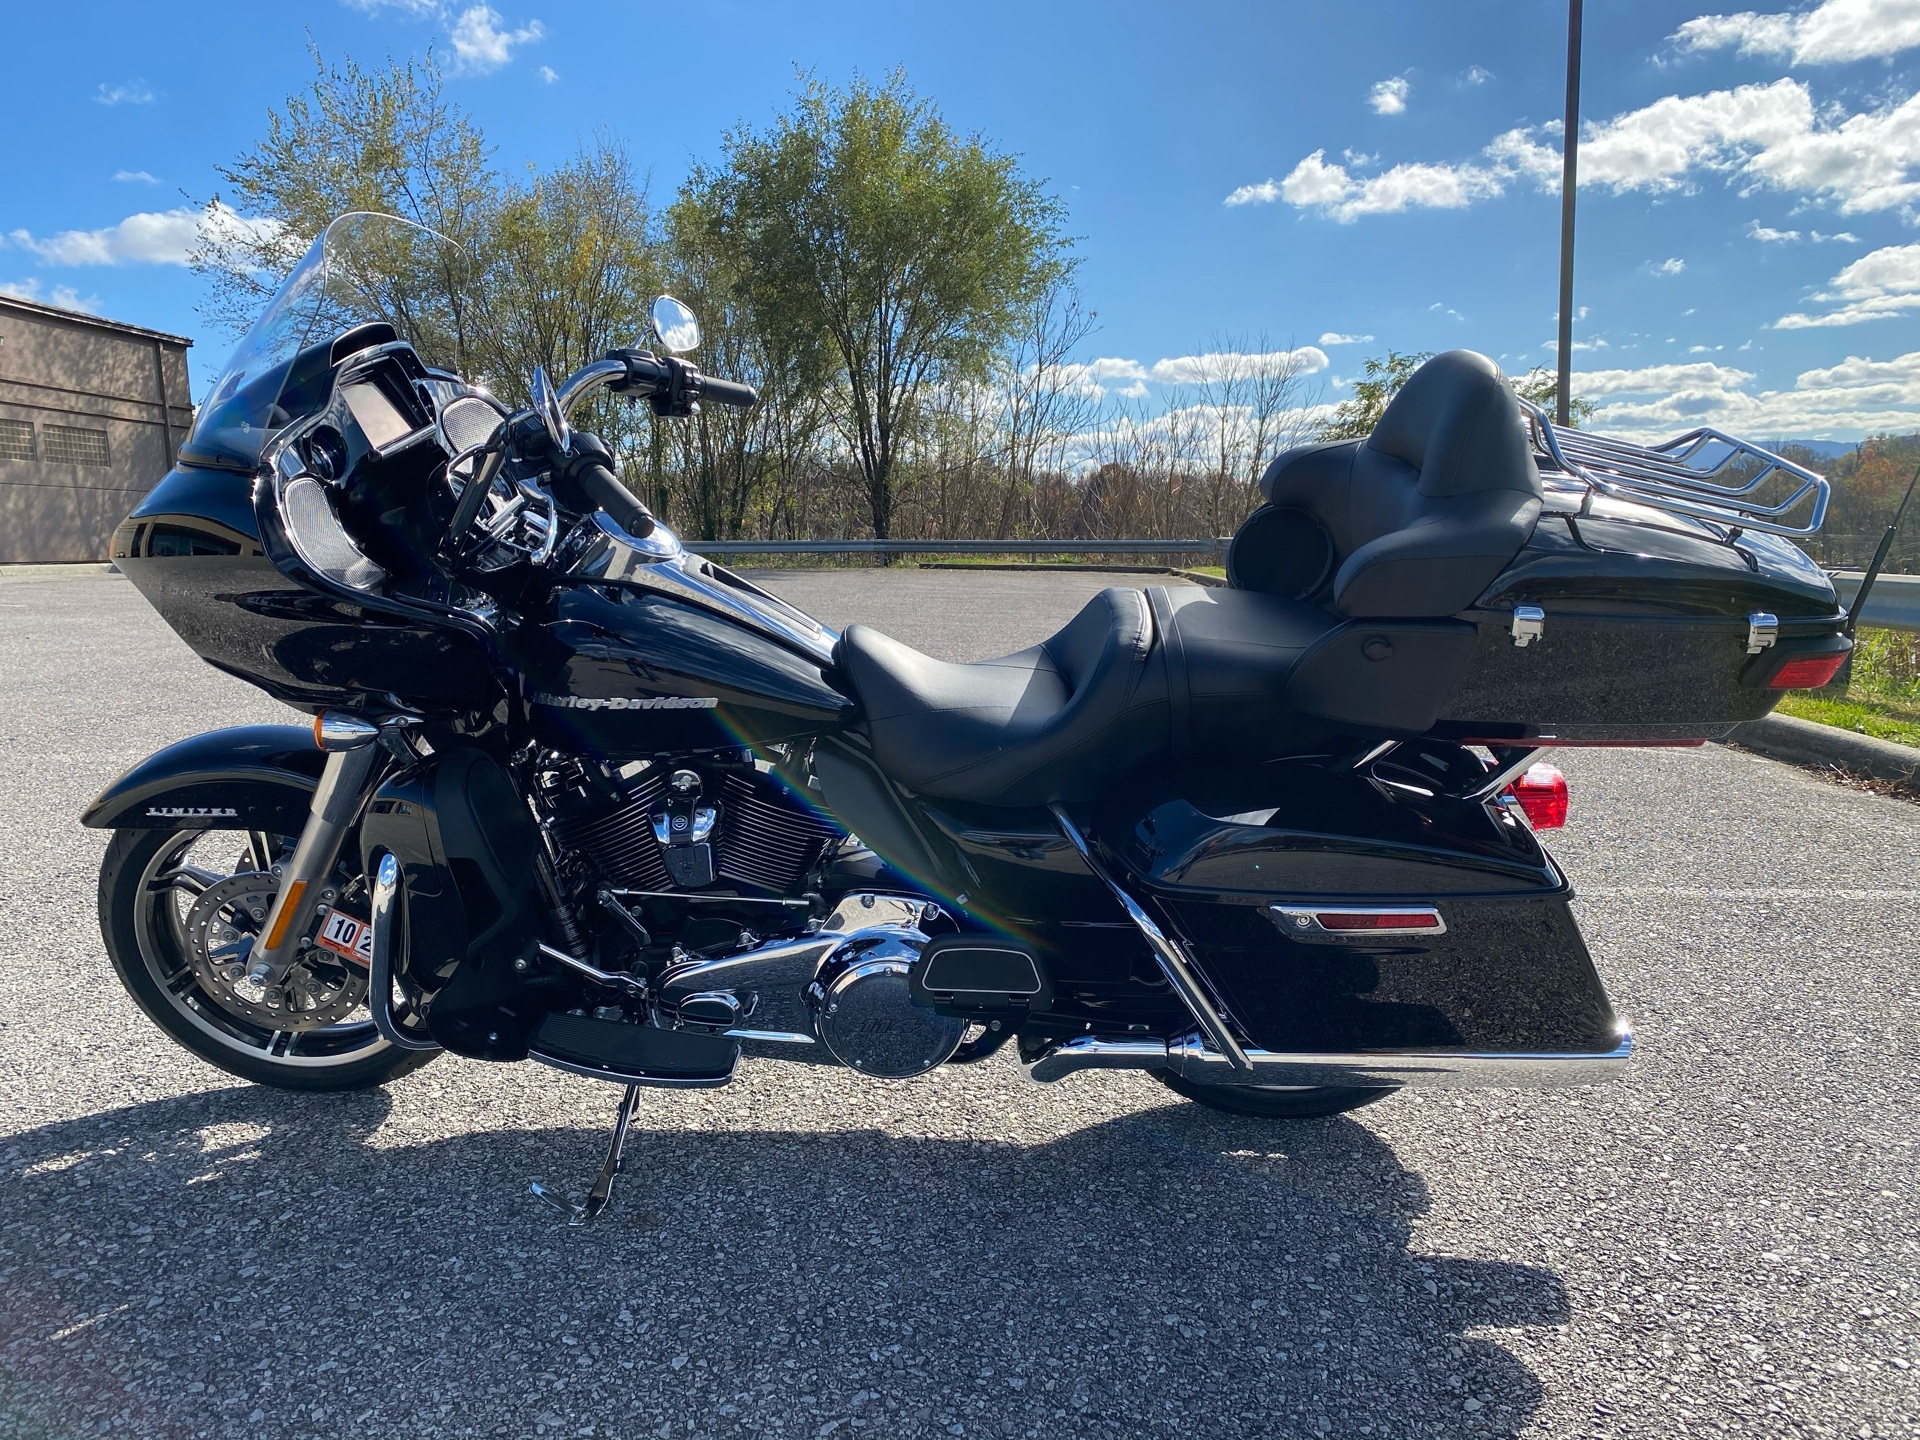 2020 Harley-Davidson Road Glide Limited in Roanoke, Virginia - Photo 2